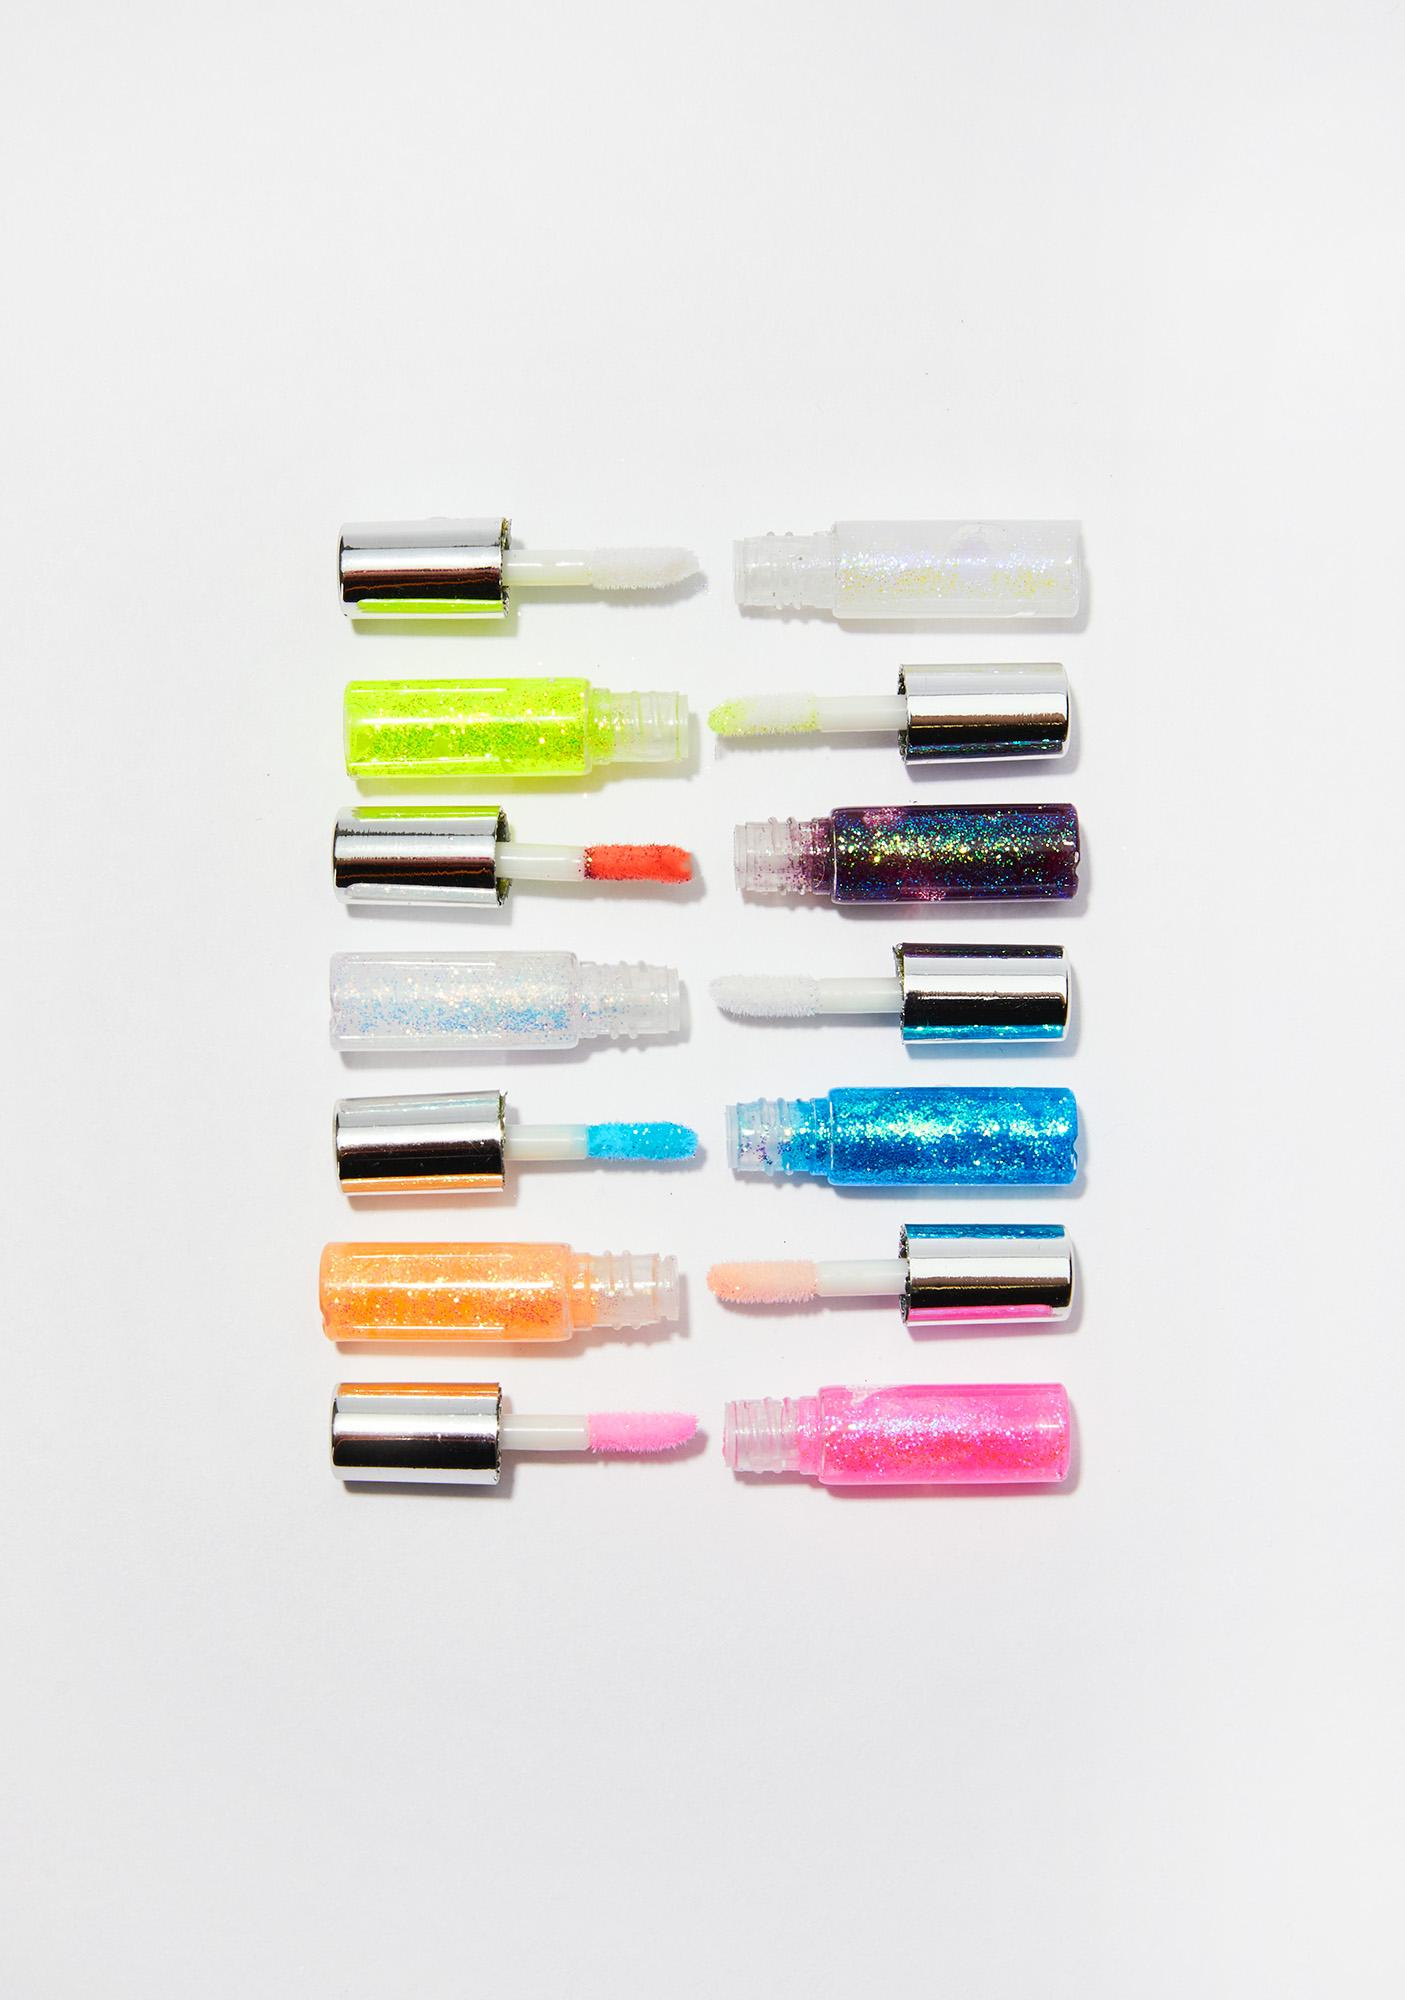 FromNicLove Mini Glitter Glue Sticks